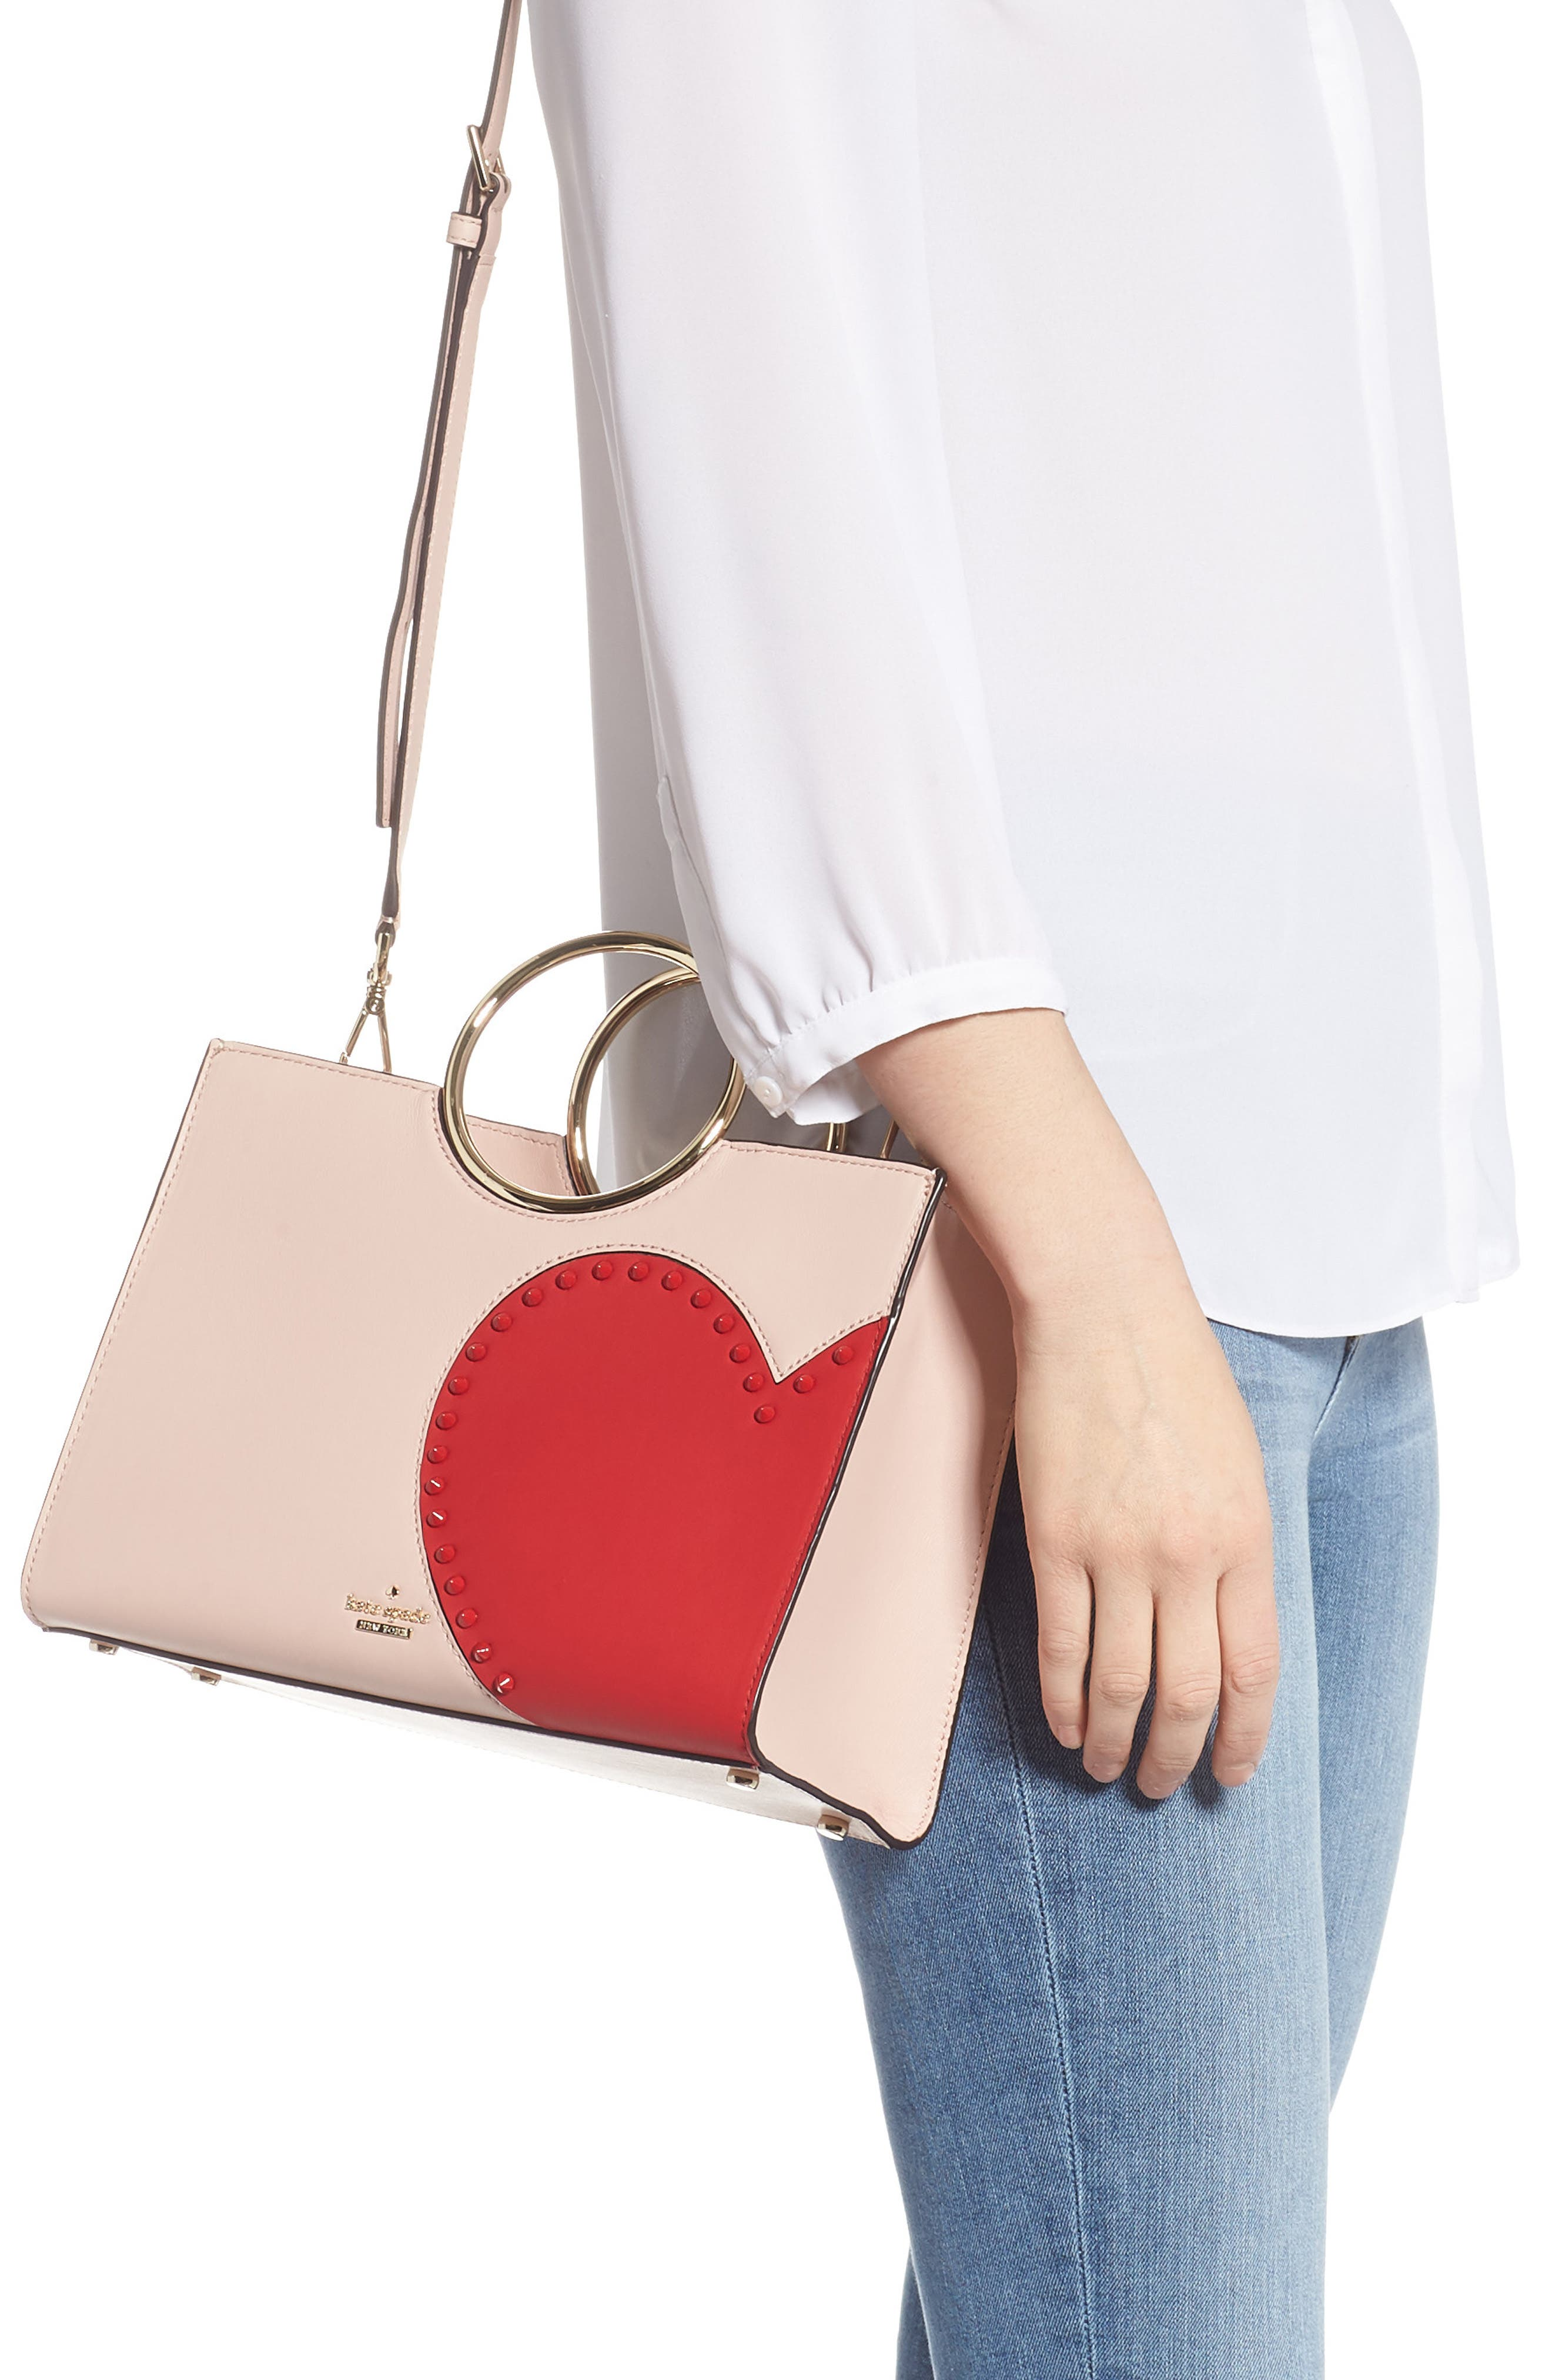 KATE SPADE NEW YORK,                             heart it - sam leather satchel,                             Alternate thumbnail 2, color,                             650